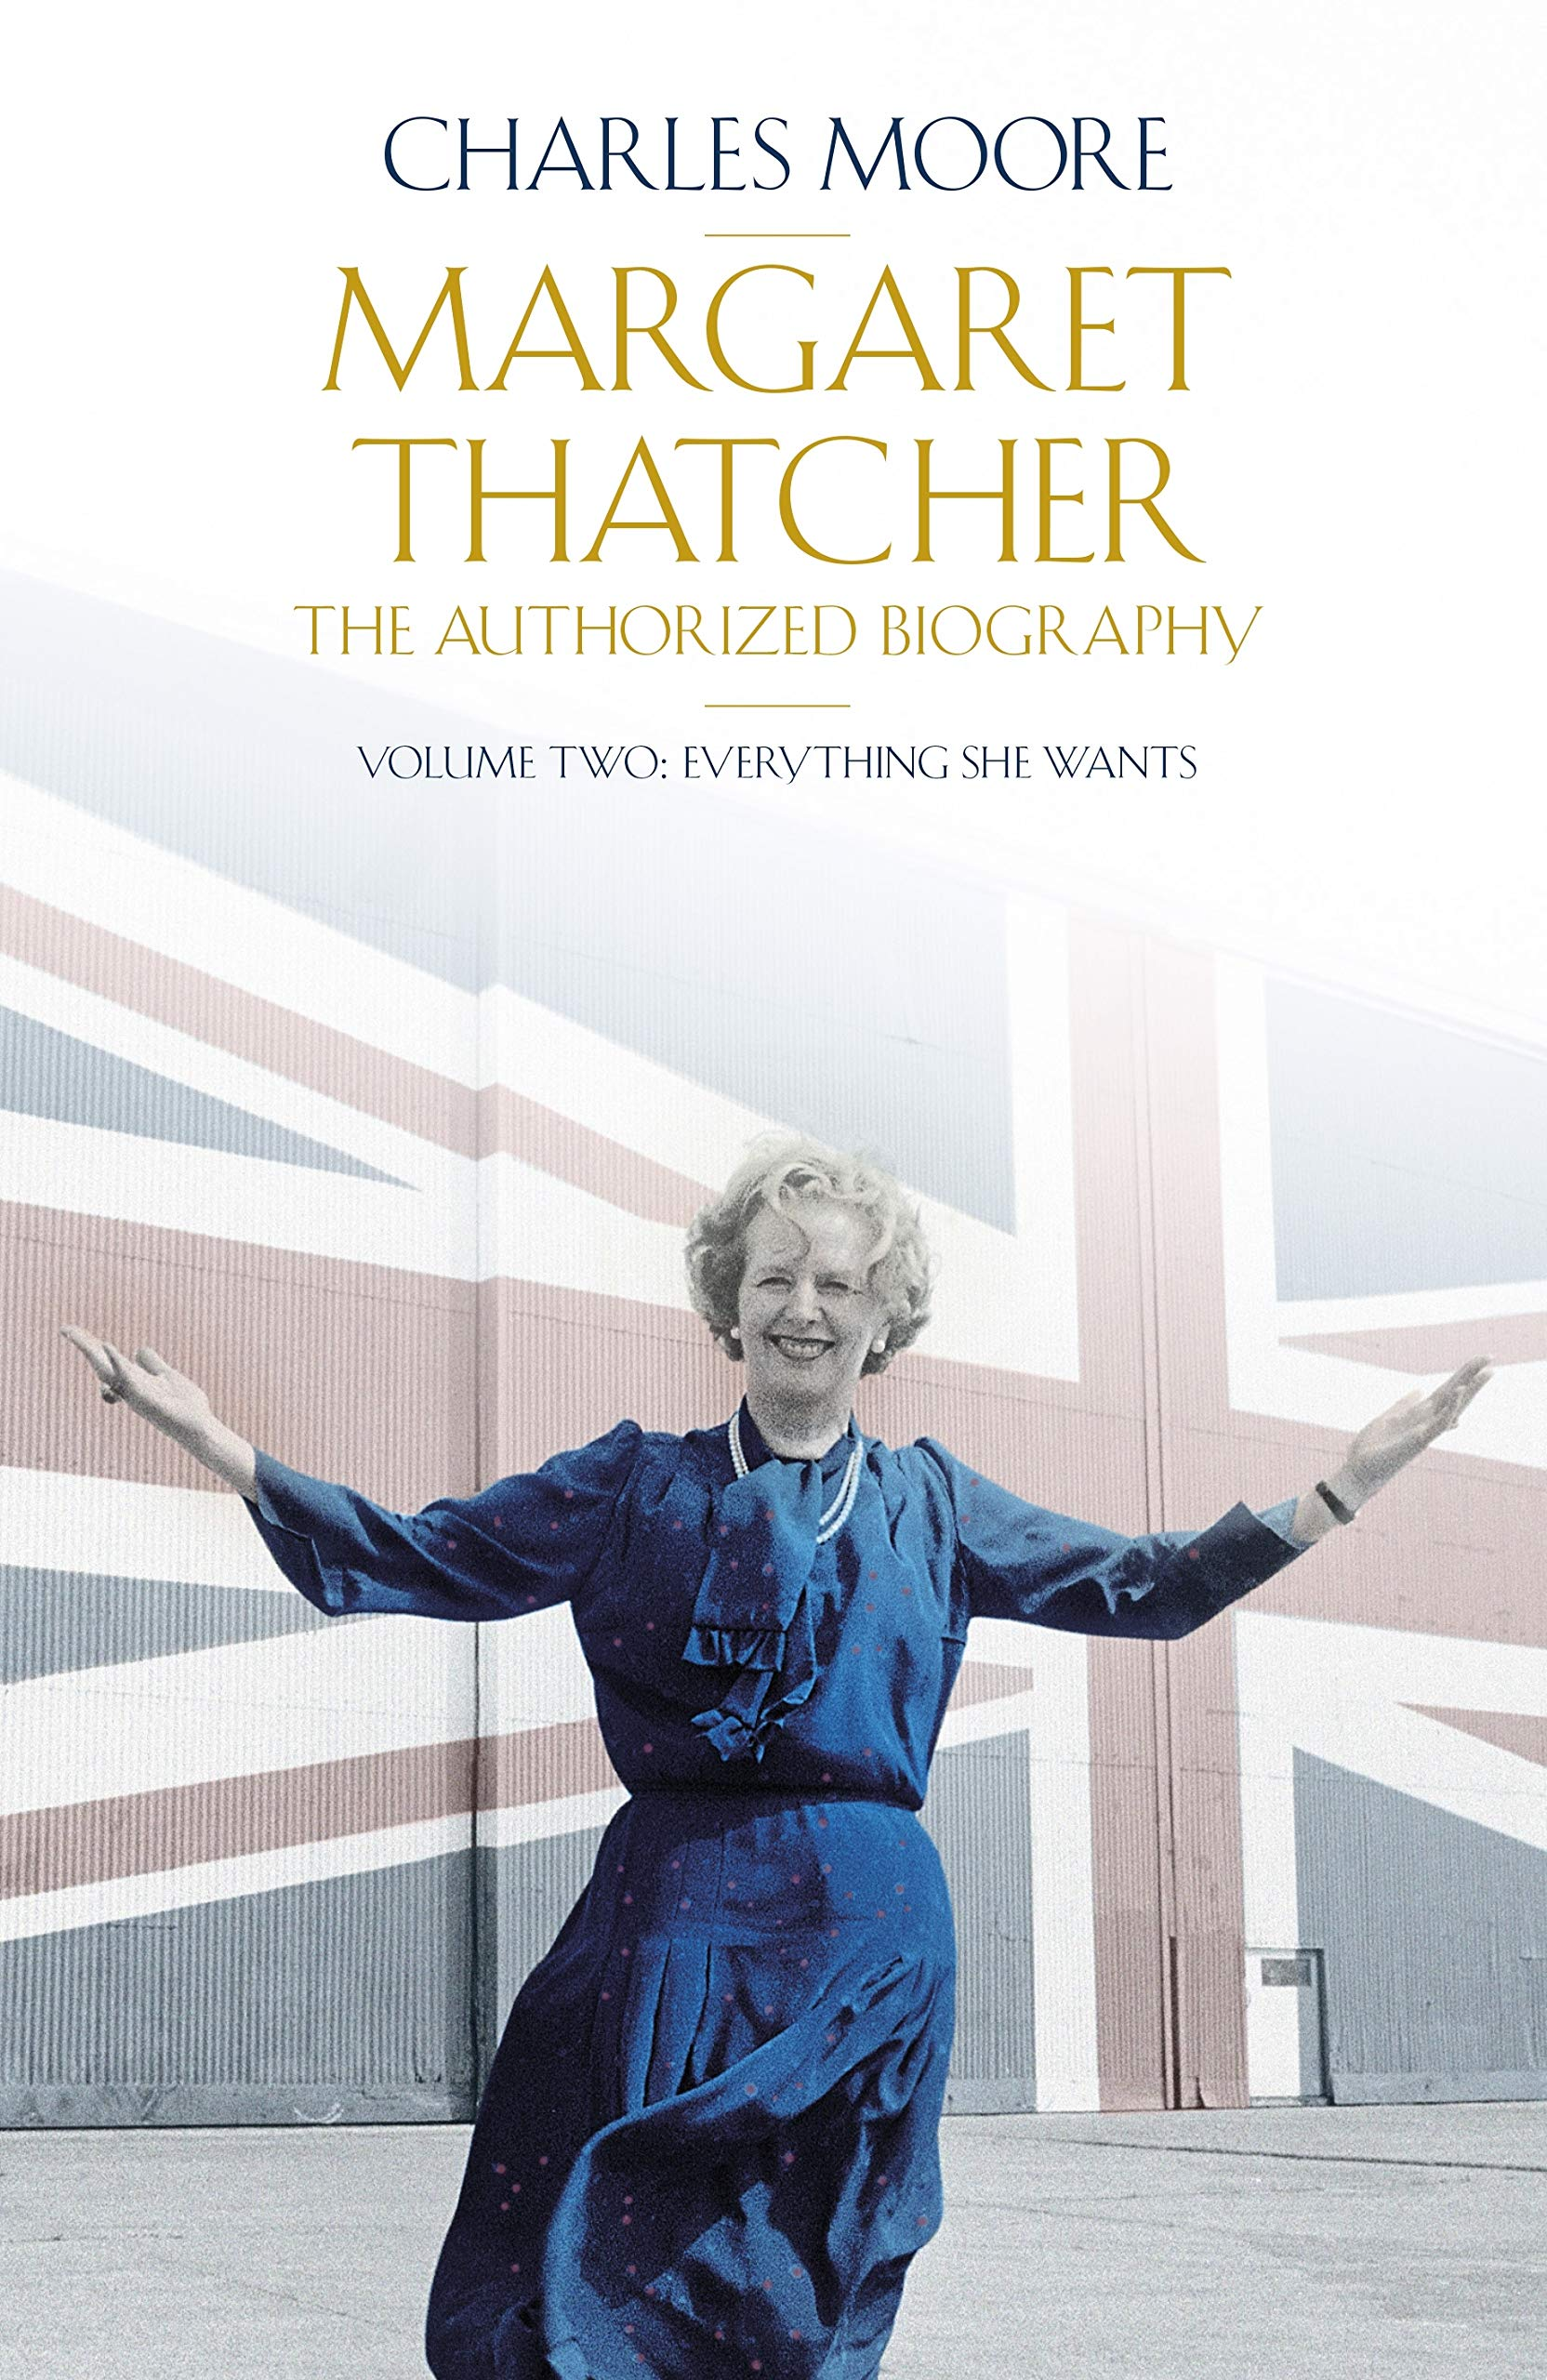 Margaret Thatcher  The Authorized Biography Volume Two  Everything She Wants  Authorised Biog Vol 2